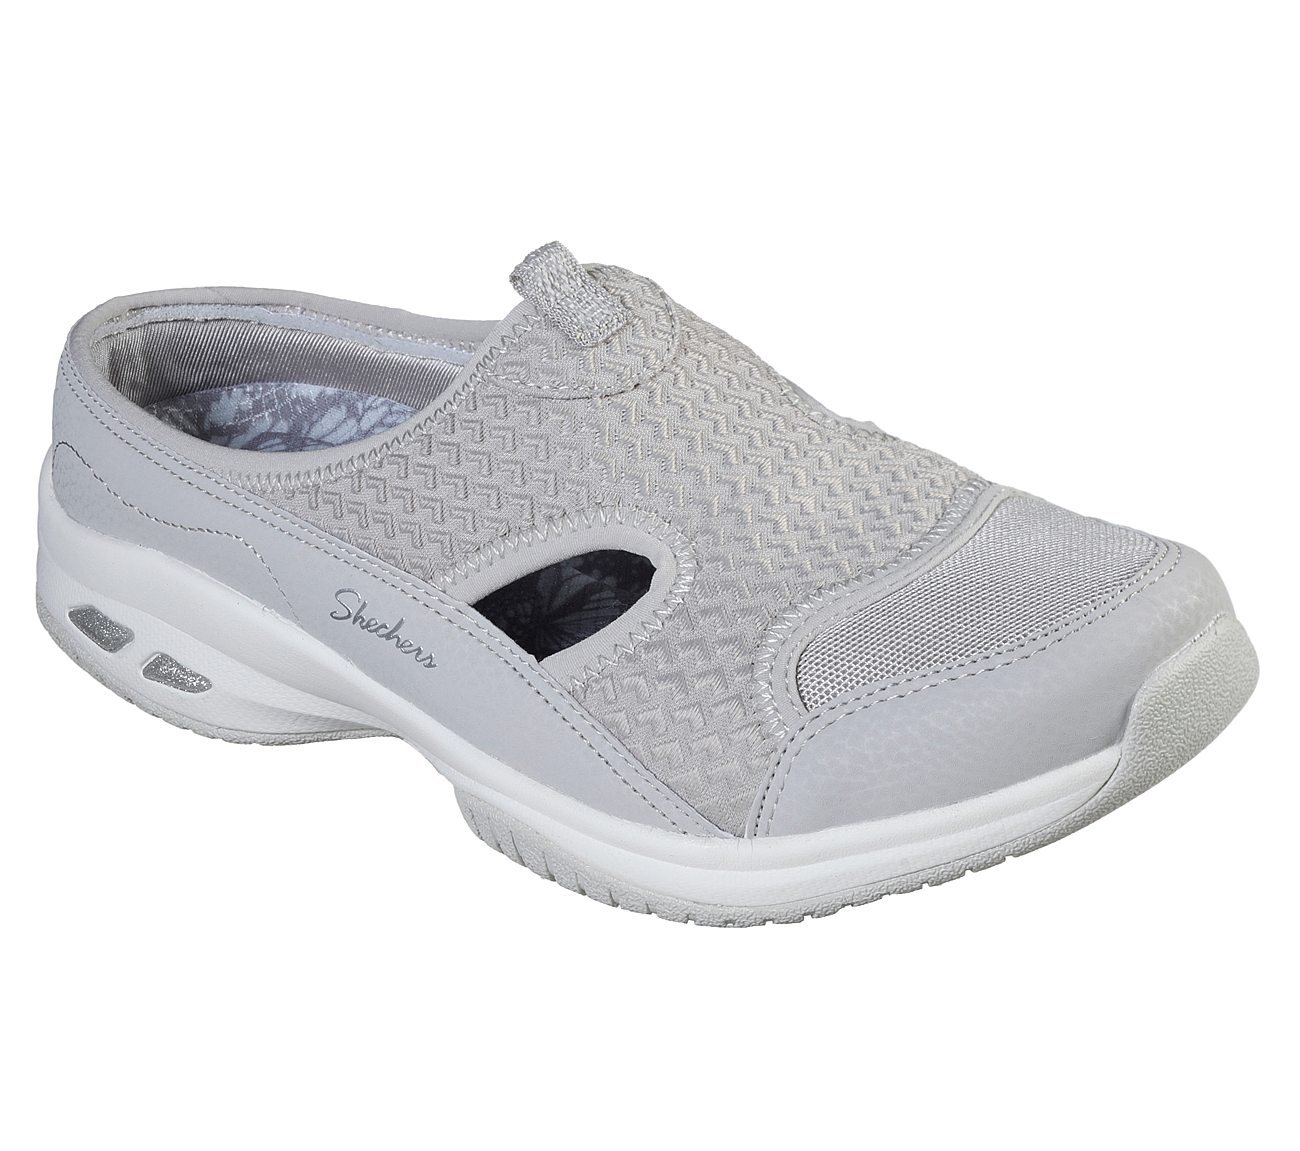 e38fd4798362 Buy SKECHERS Relaxed Fit  Commute Time - Rideshare Modern Comfort ...